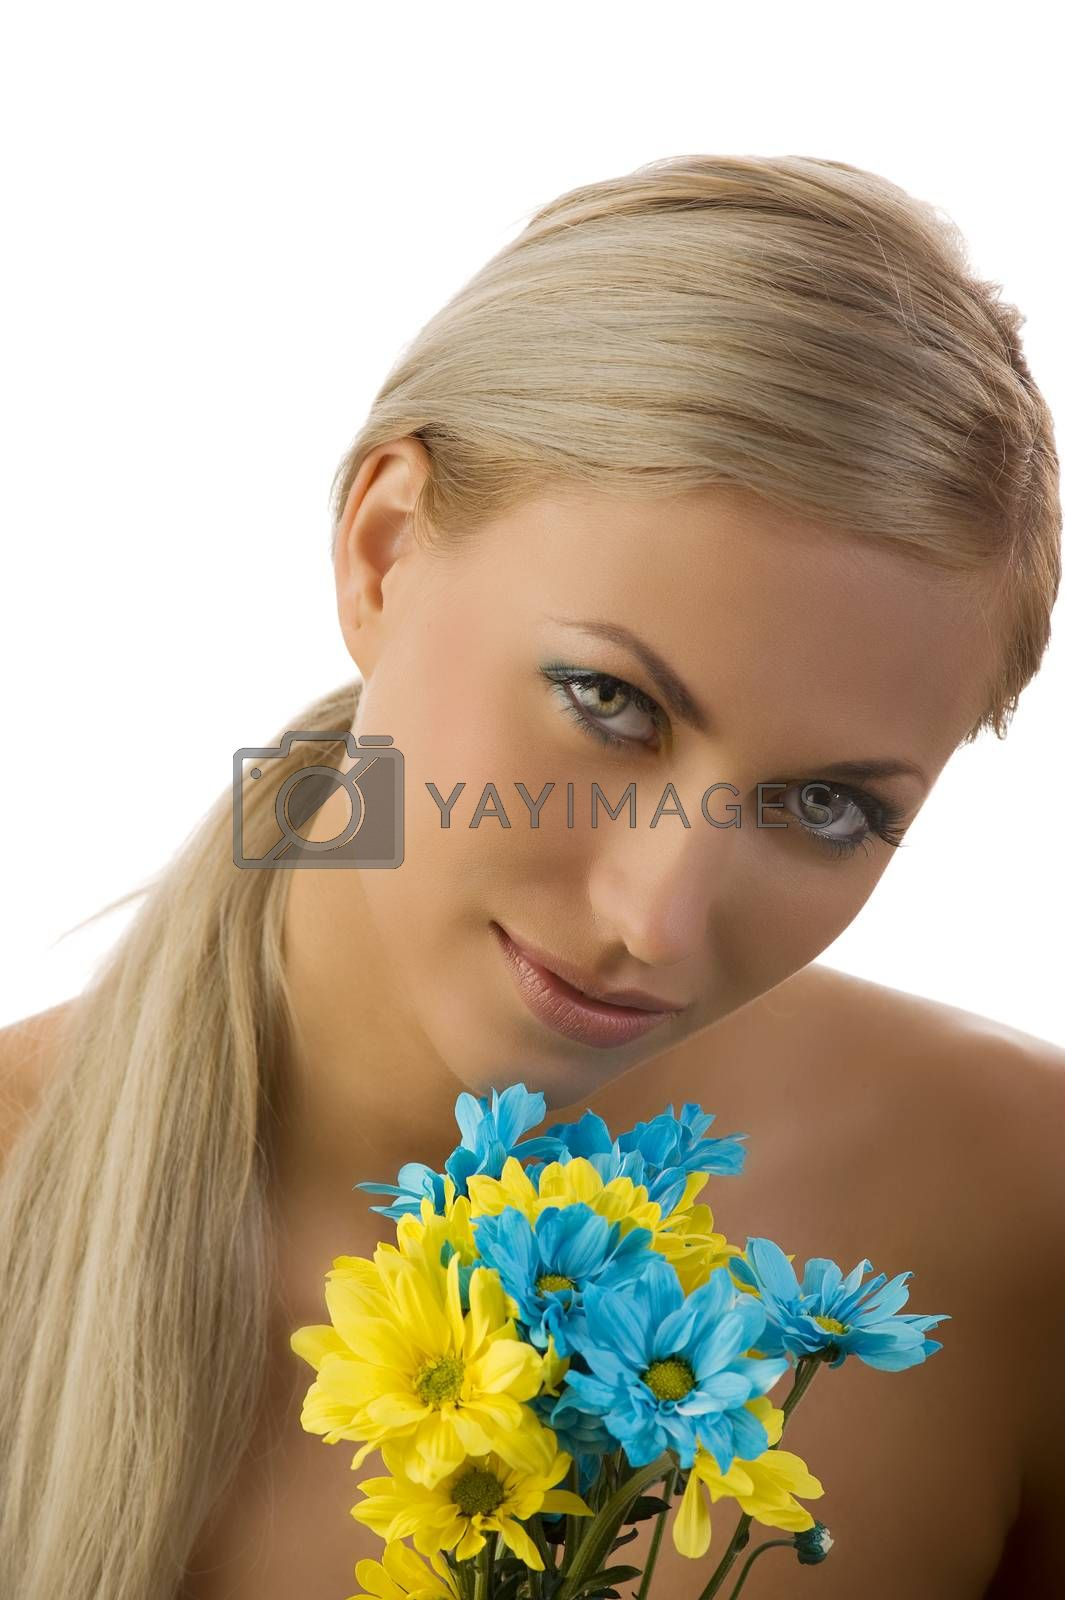 Royalty free image of beauty girl yellow and blue flower by fotoCD